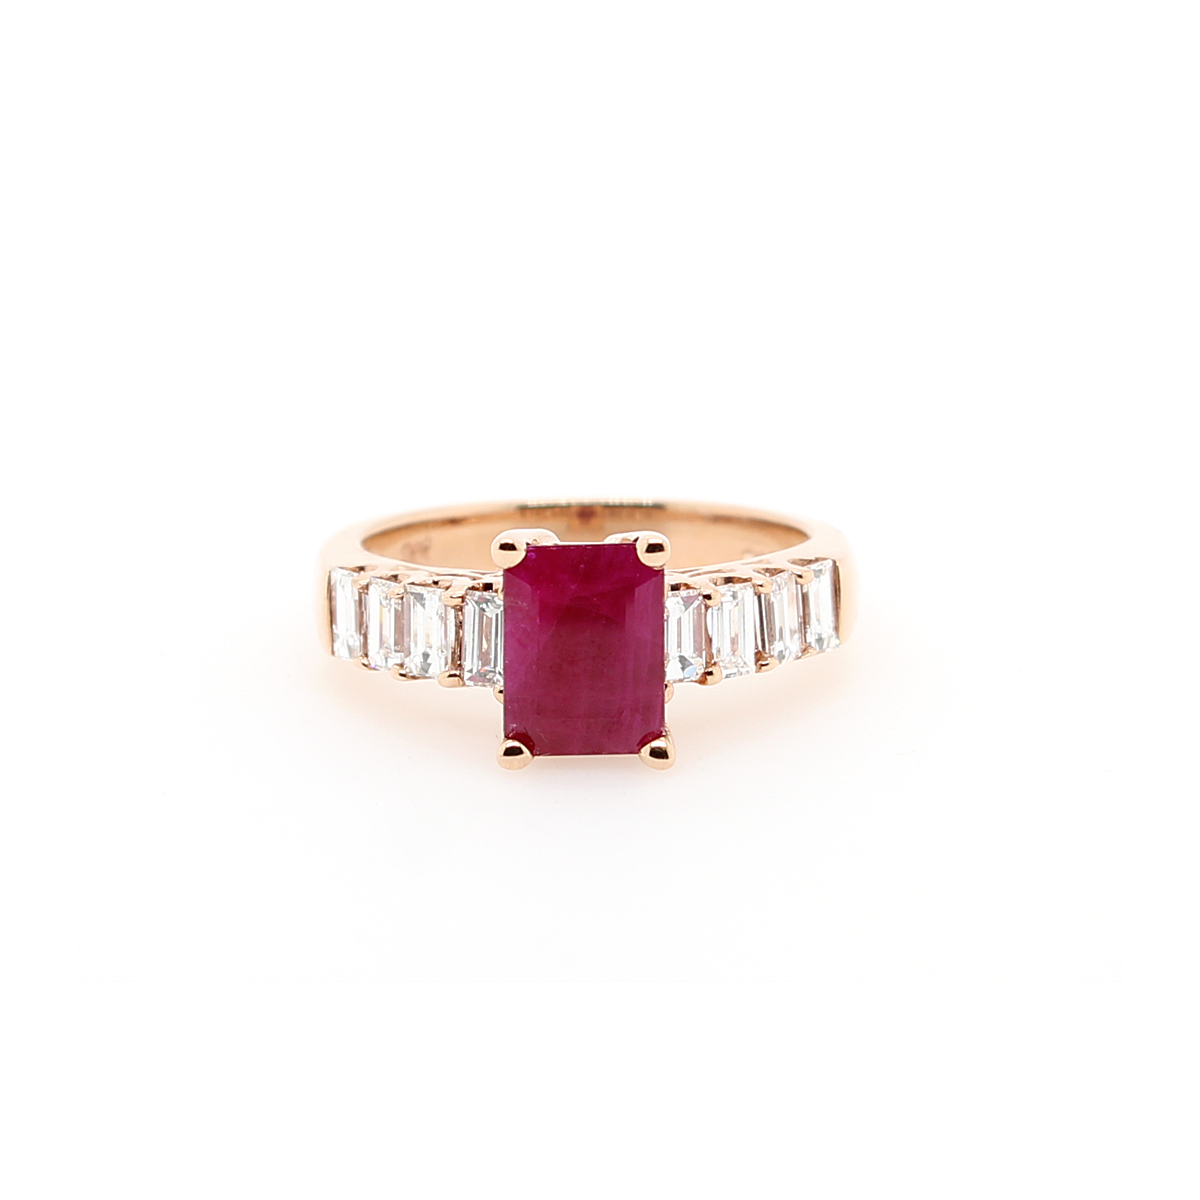 Ryan Gems 14 Karat Rose Gold Emerald Cut Ruby and Diamond Ring